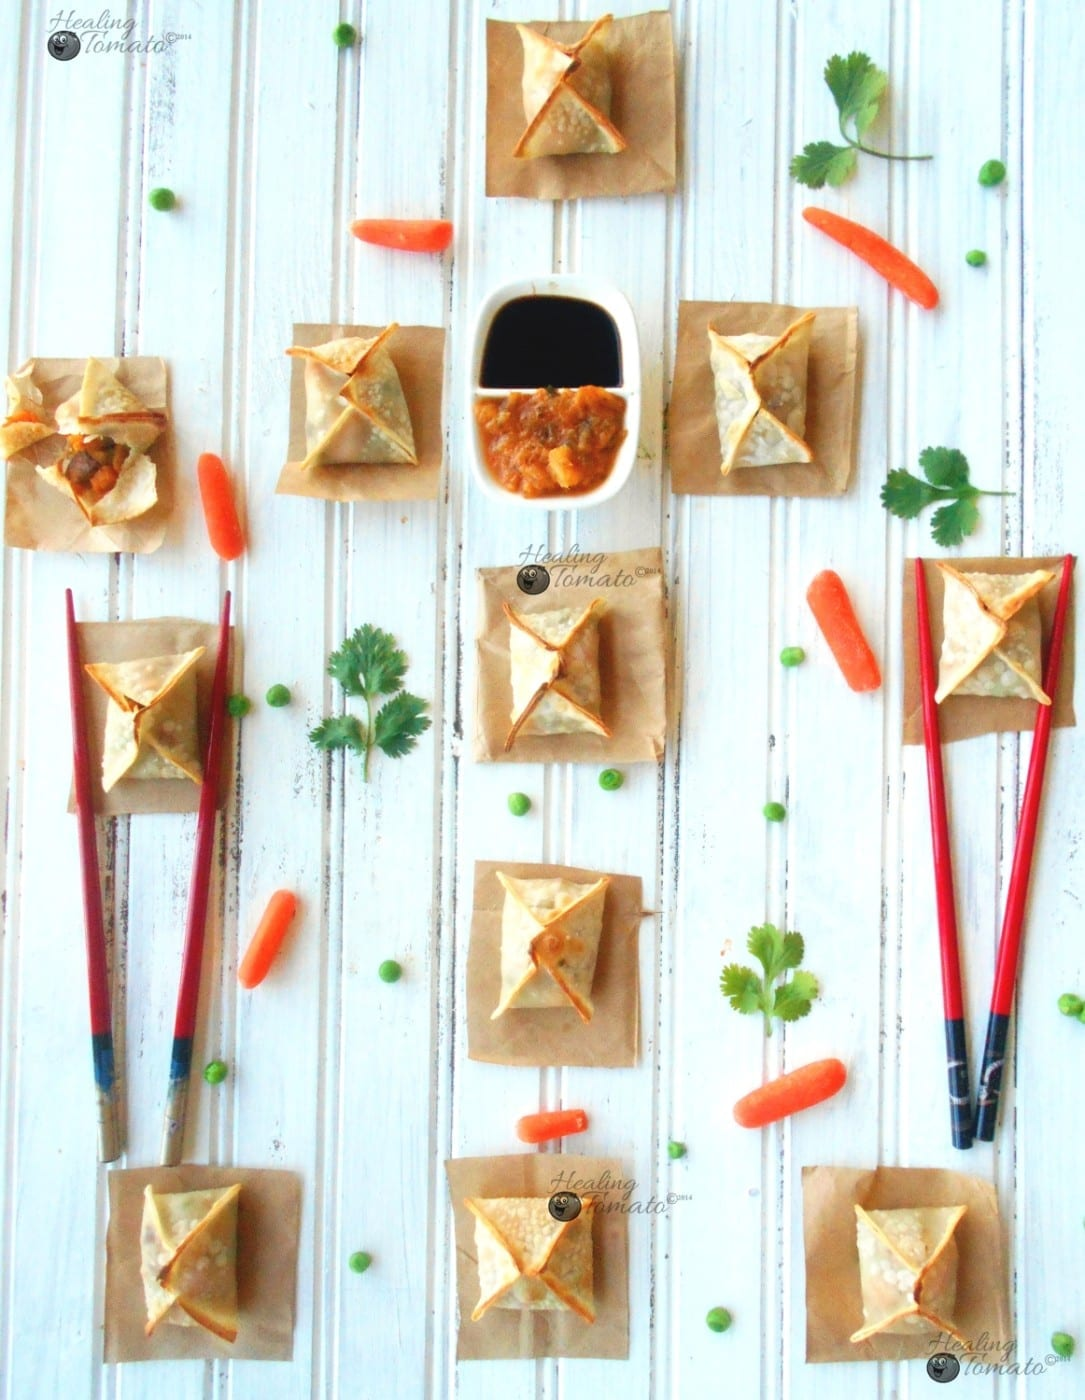 Overhead view of samosa wontons on a flat surface